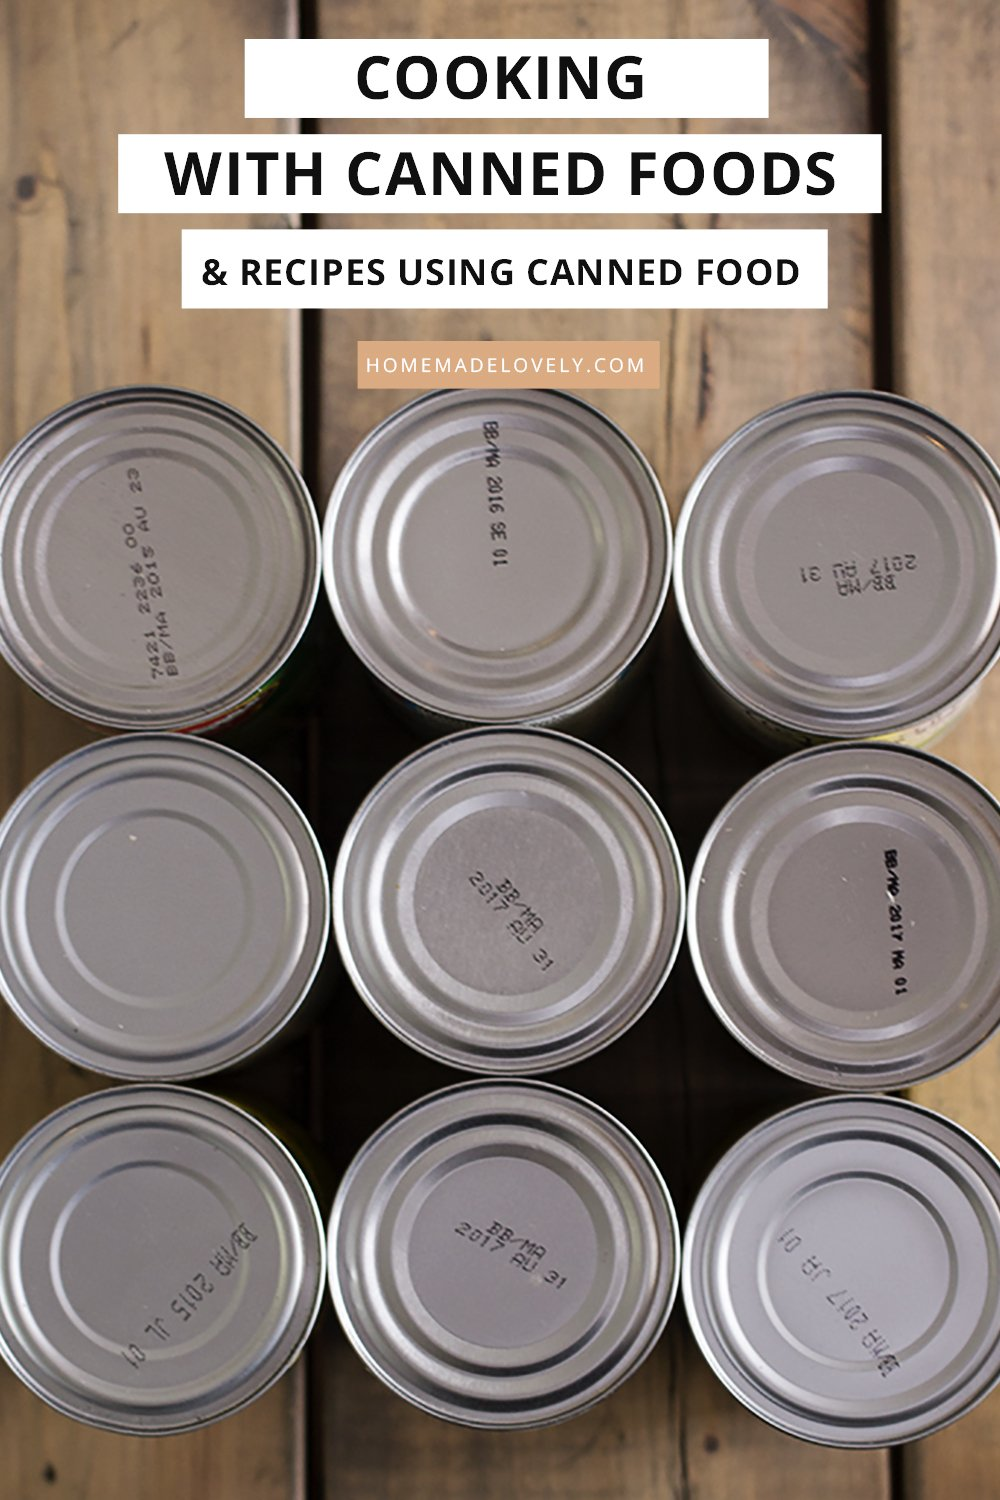 cans on a table with text overlay that says cooking with canned foods and recipes for canned foods